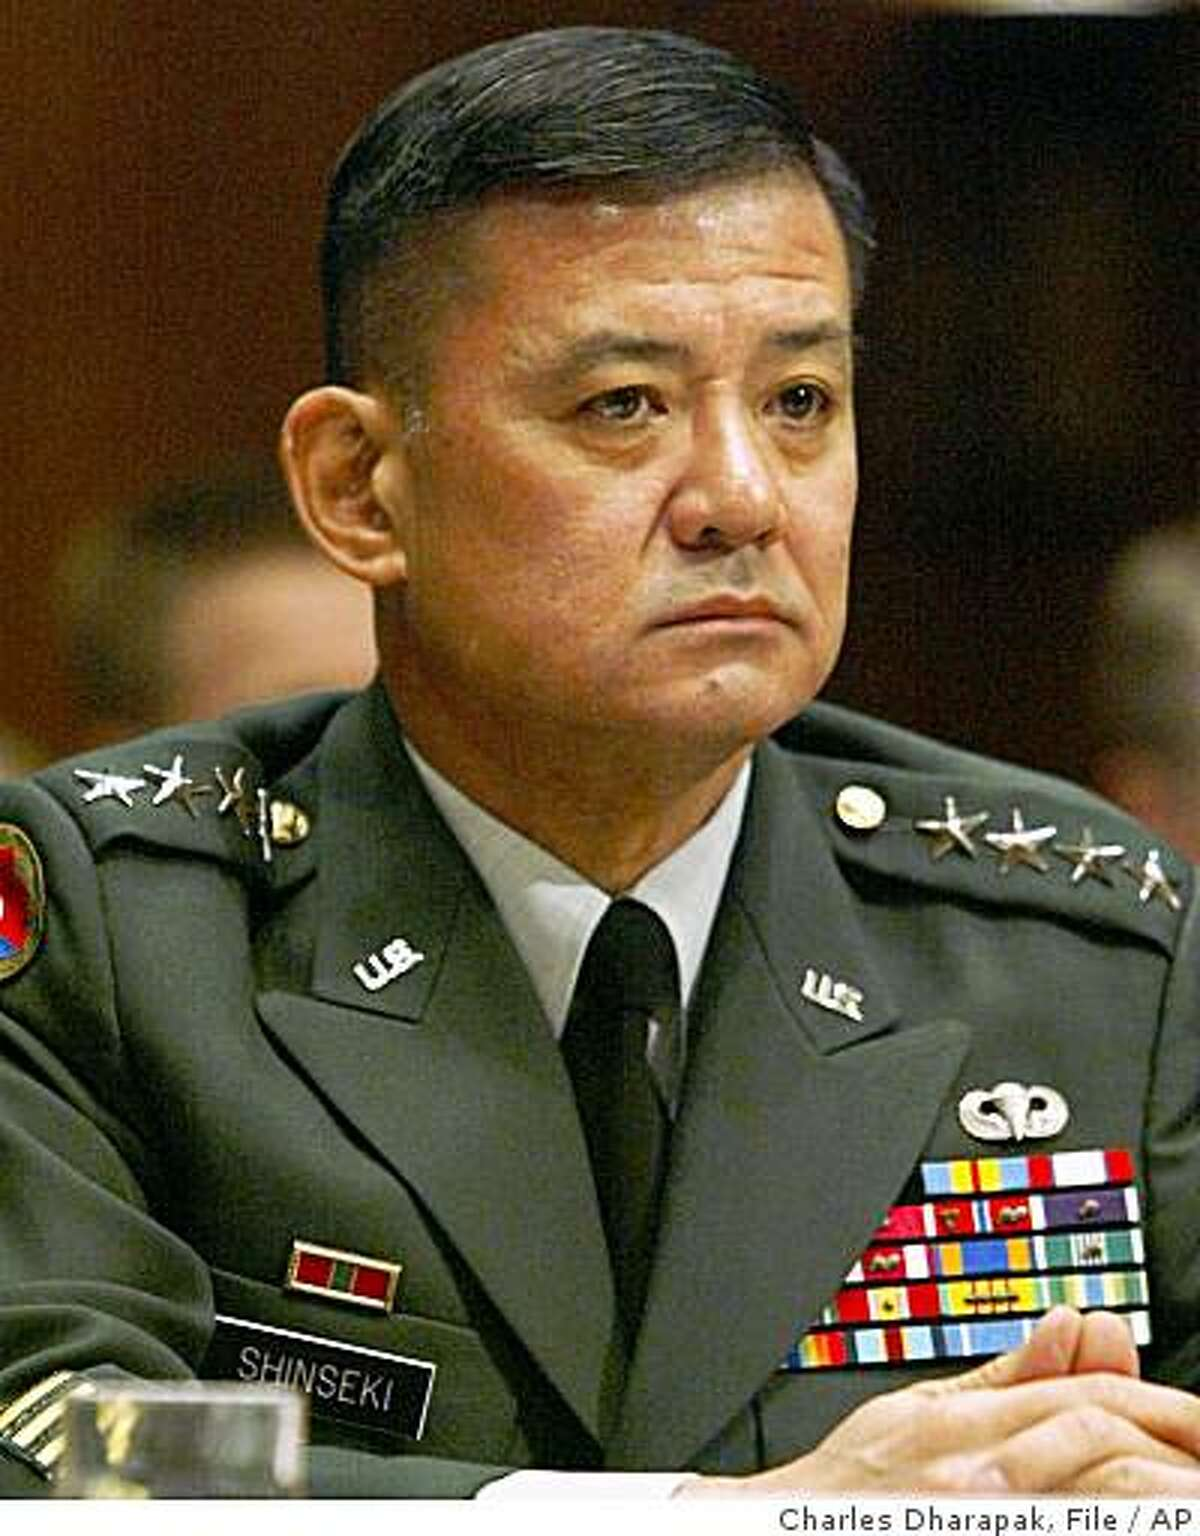 ** FILE ** This Feb. 25, 2003 file photo shows Gen. Eric K. Shinseki, then Chief of Staff of the United States Army, attends the Senate Armed Services committee hearing regarding the Defense Authorization Request for 2004 on Capitol Hill in Washington. U.S. President-elect Barack Obama has selected retired Gen. Eric K. Shinseki to be VA secretary according to Democratic officials, Saturday Dec. 6, 2008. (AP Photo/Charles Dharapak, File)